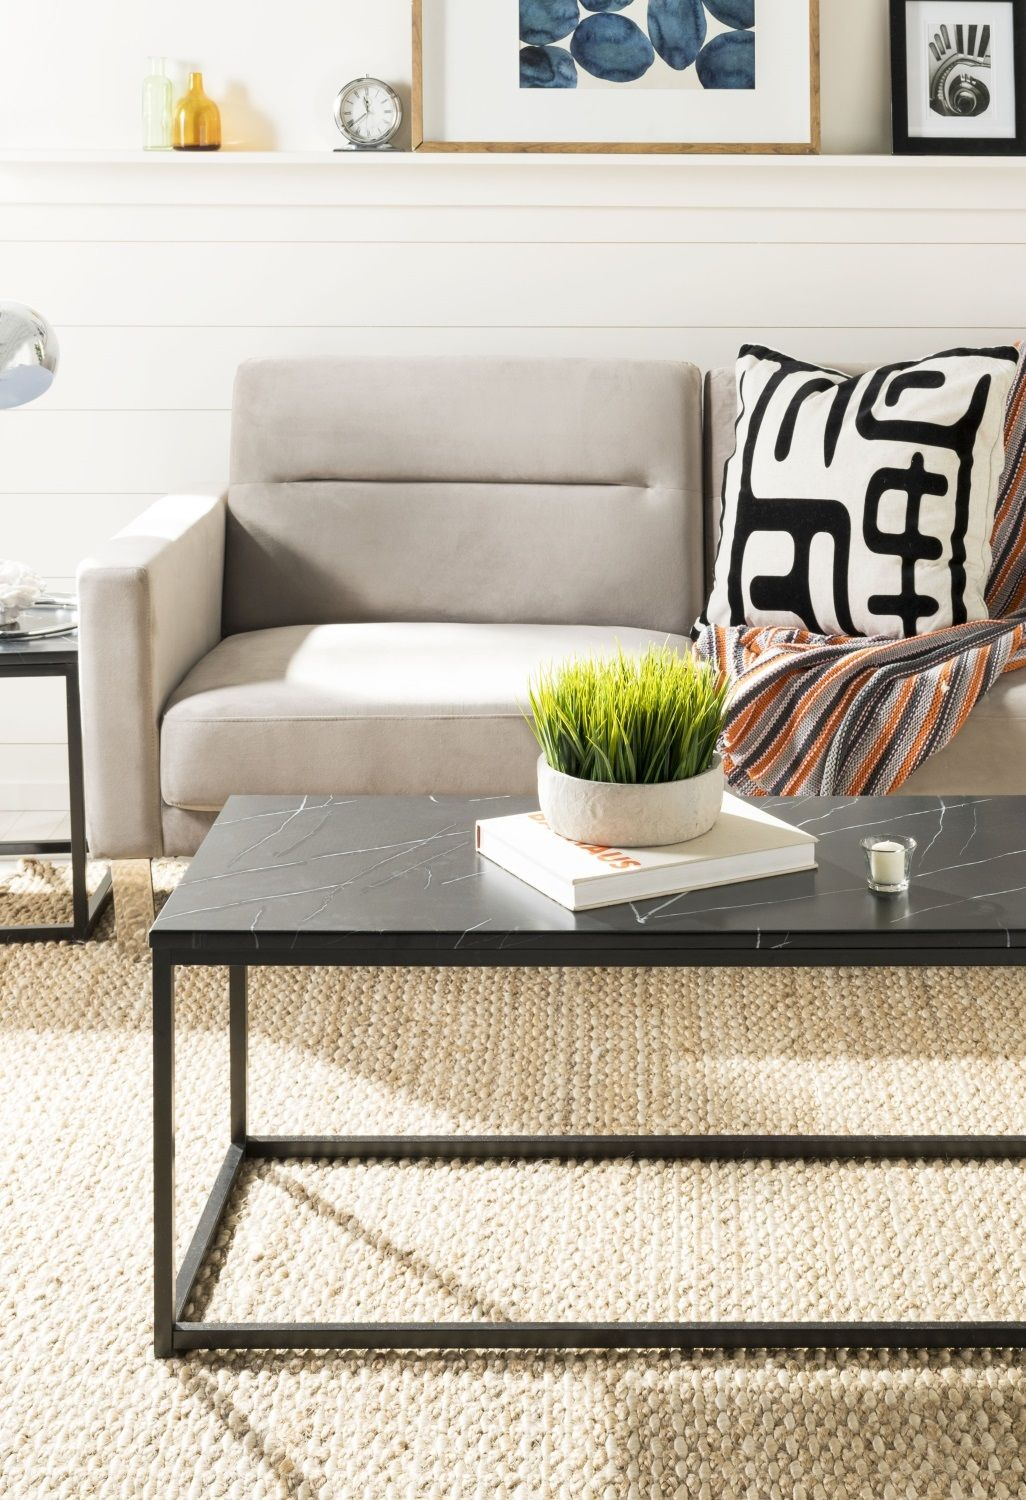 5 Ideas For A Do It Yourself Coffee Table Let S Do It Coffee